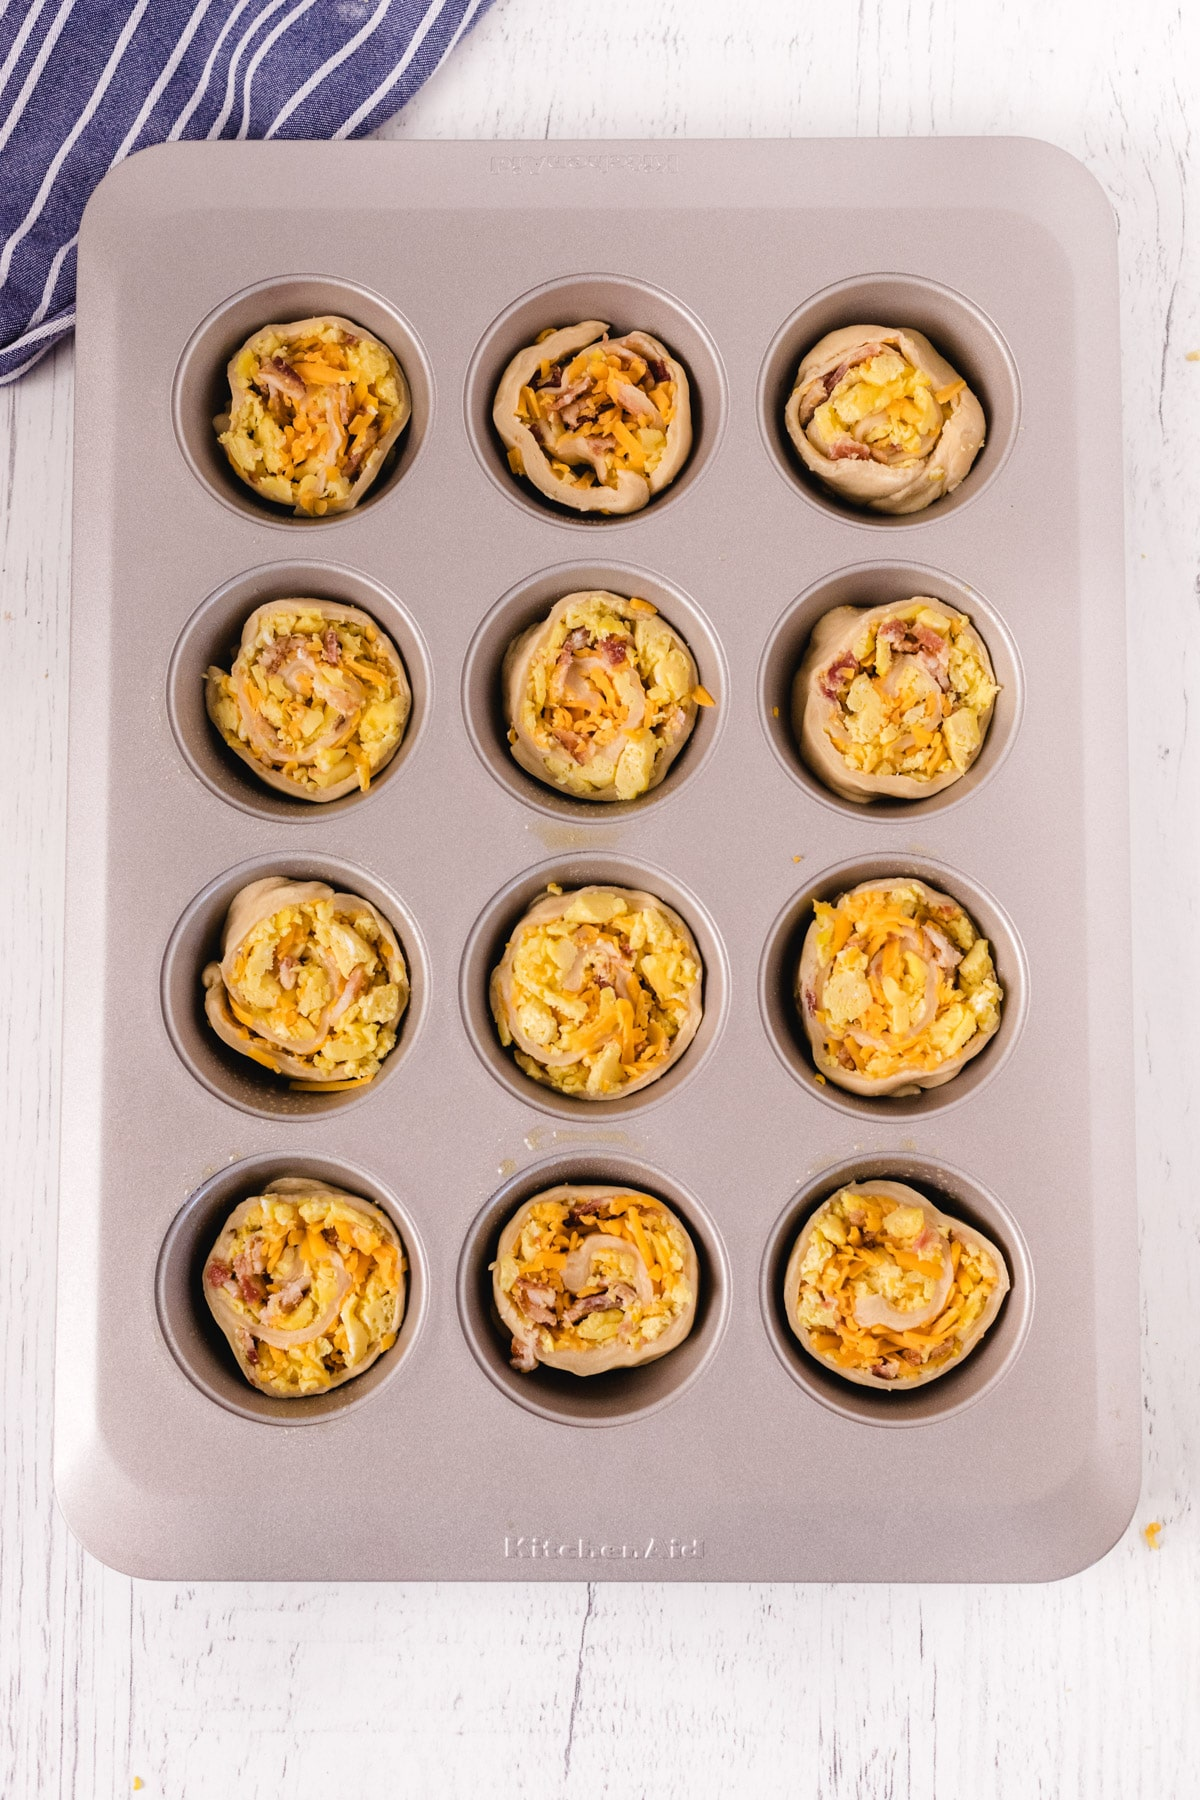 Breakfast rolls in a muffin tin